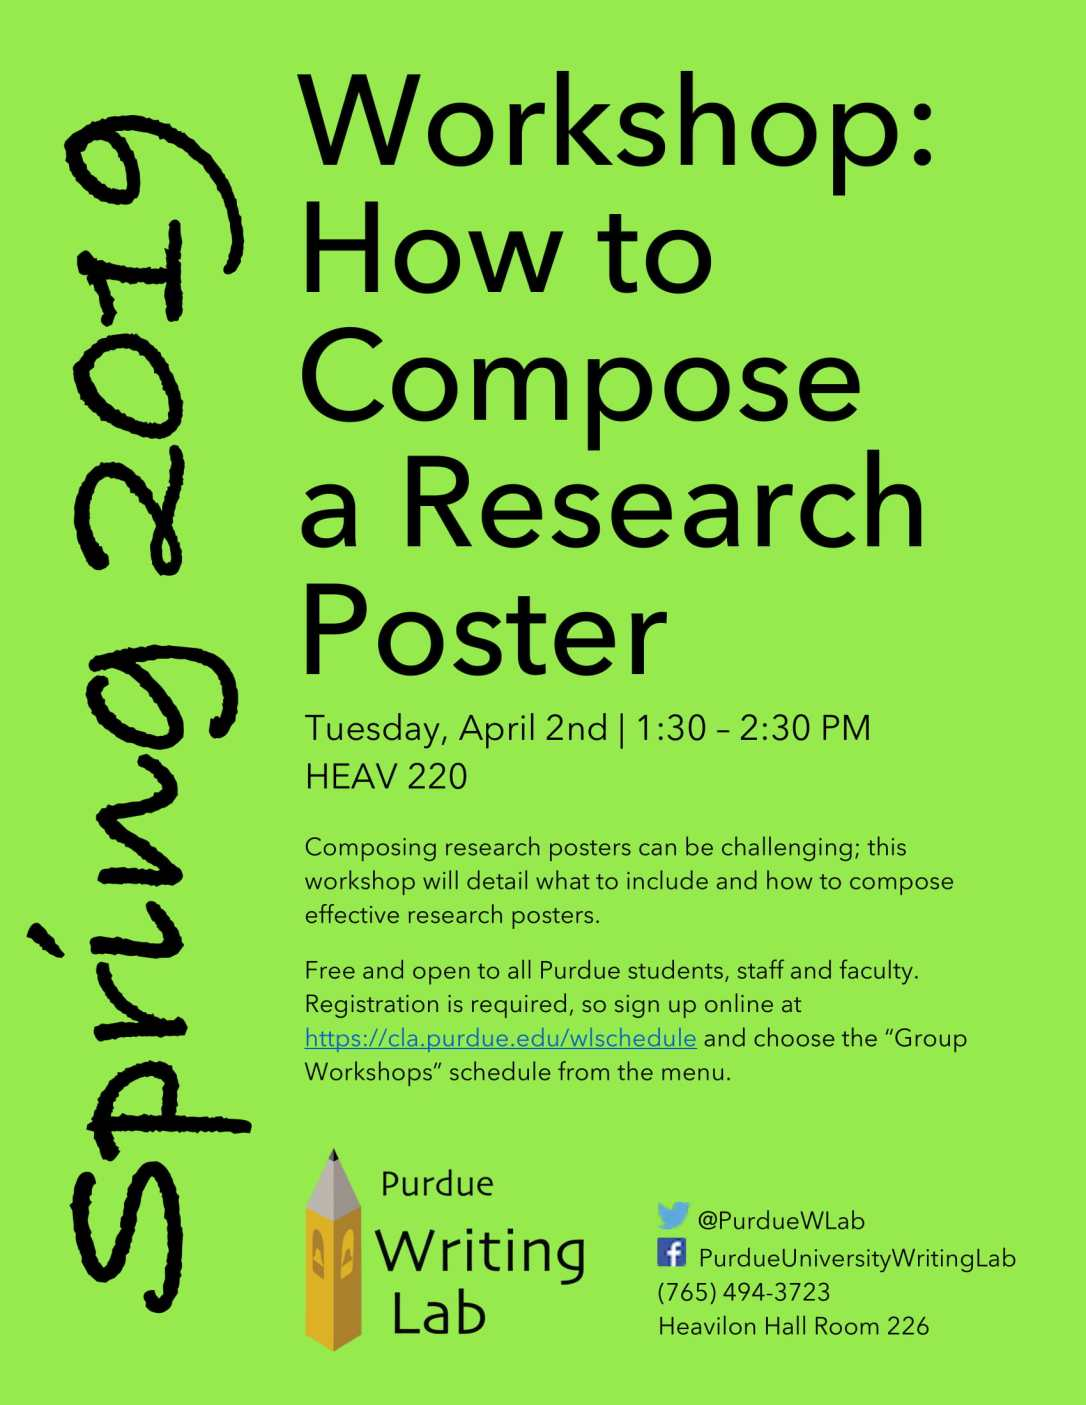 Research posters Workshop Flyer_SPring 2019-1.jpg